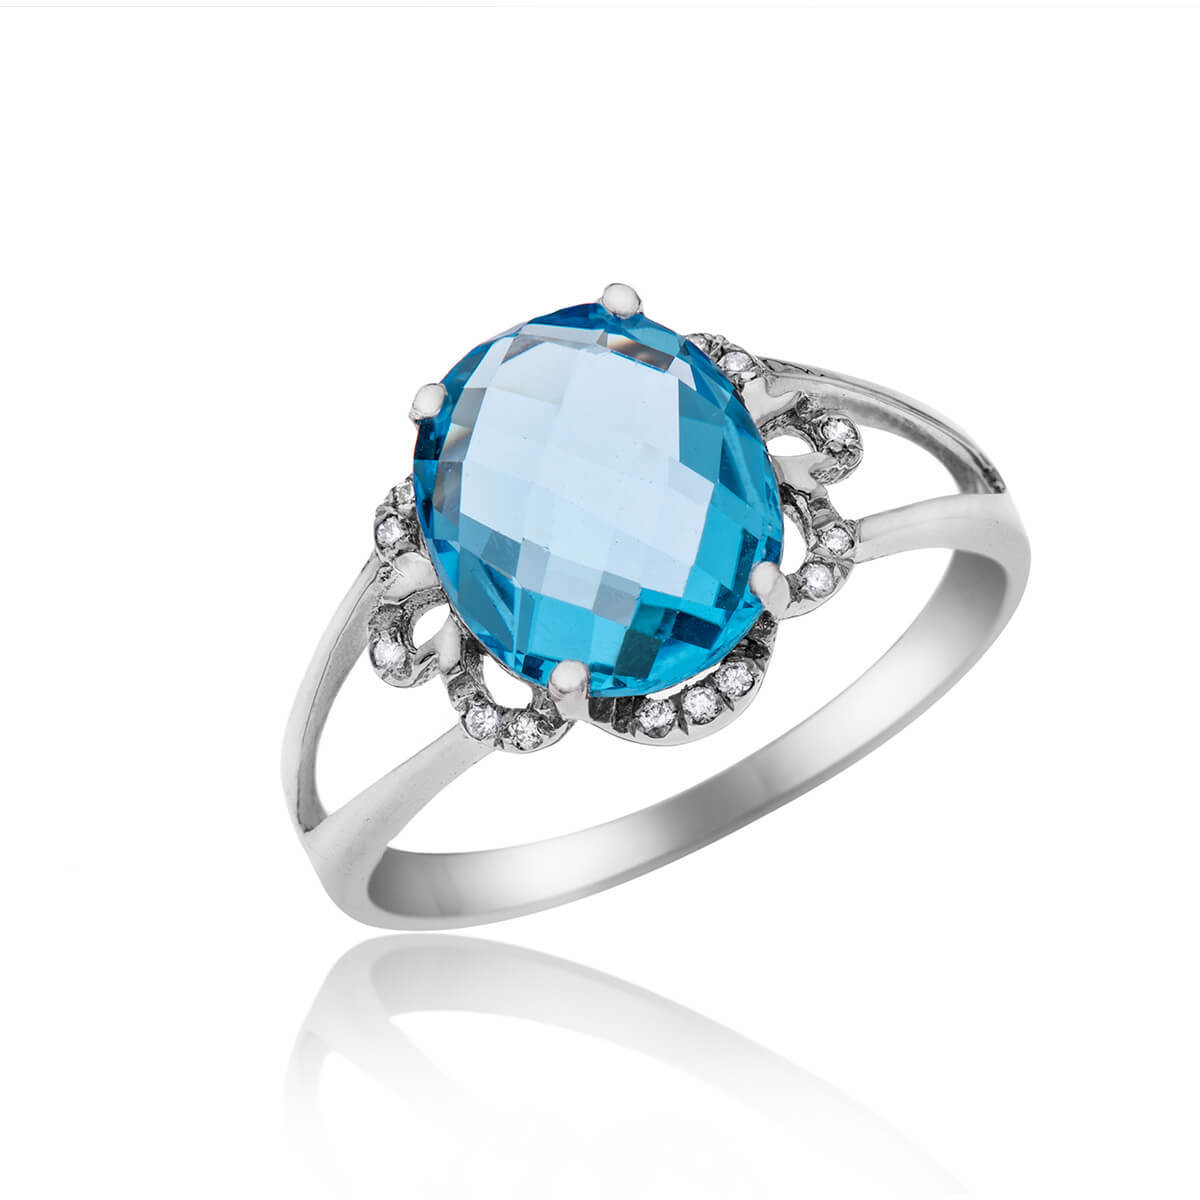 Blue Topaz and Diamonds Ring_RD3461BT-W